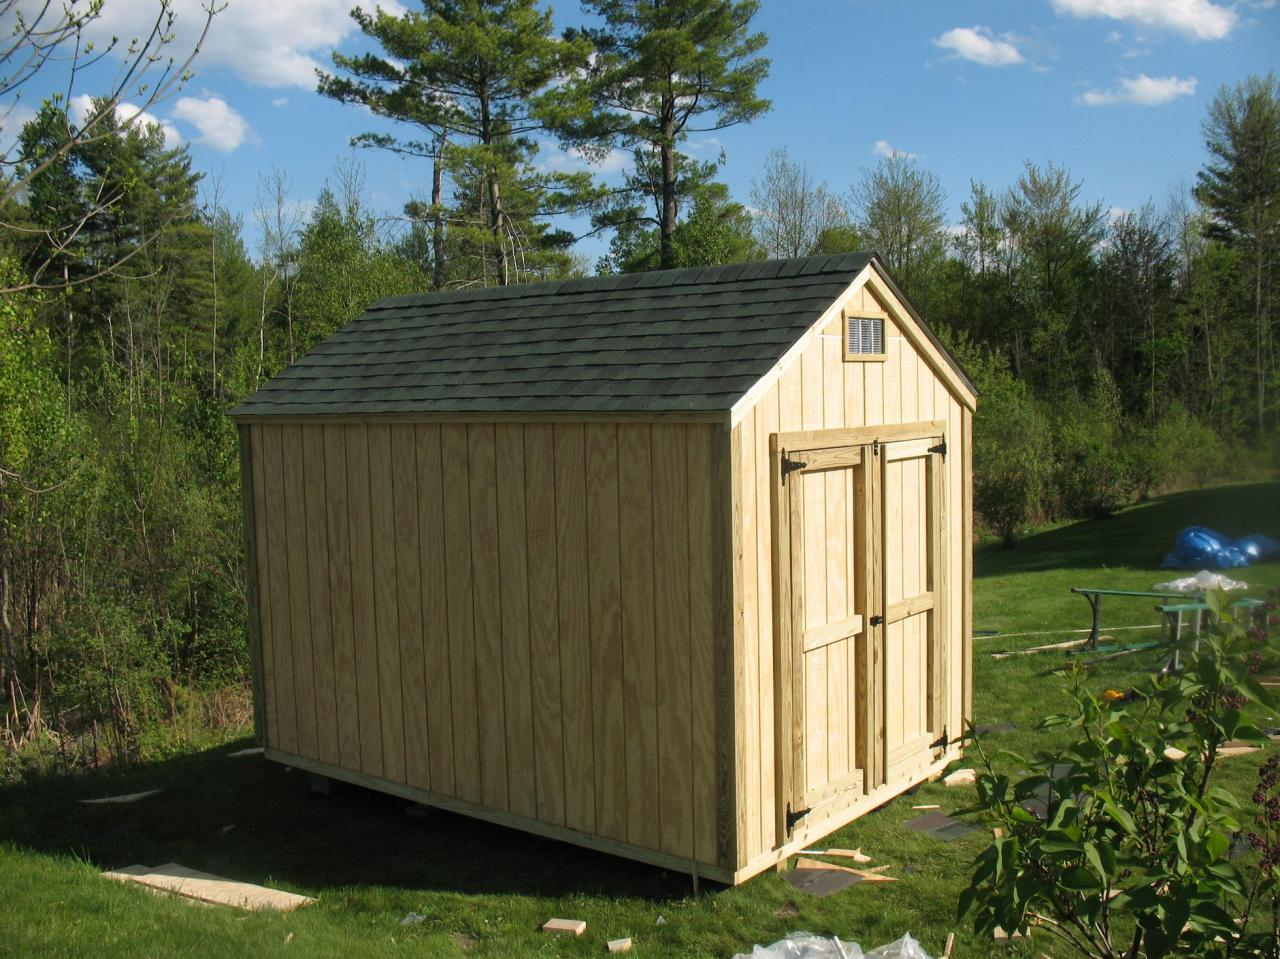 Built On Site Custom Amish Garages In Oneonta Ny: Amish Sheds Plattsburgh New York